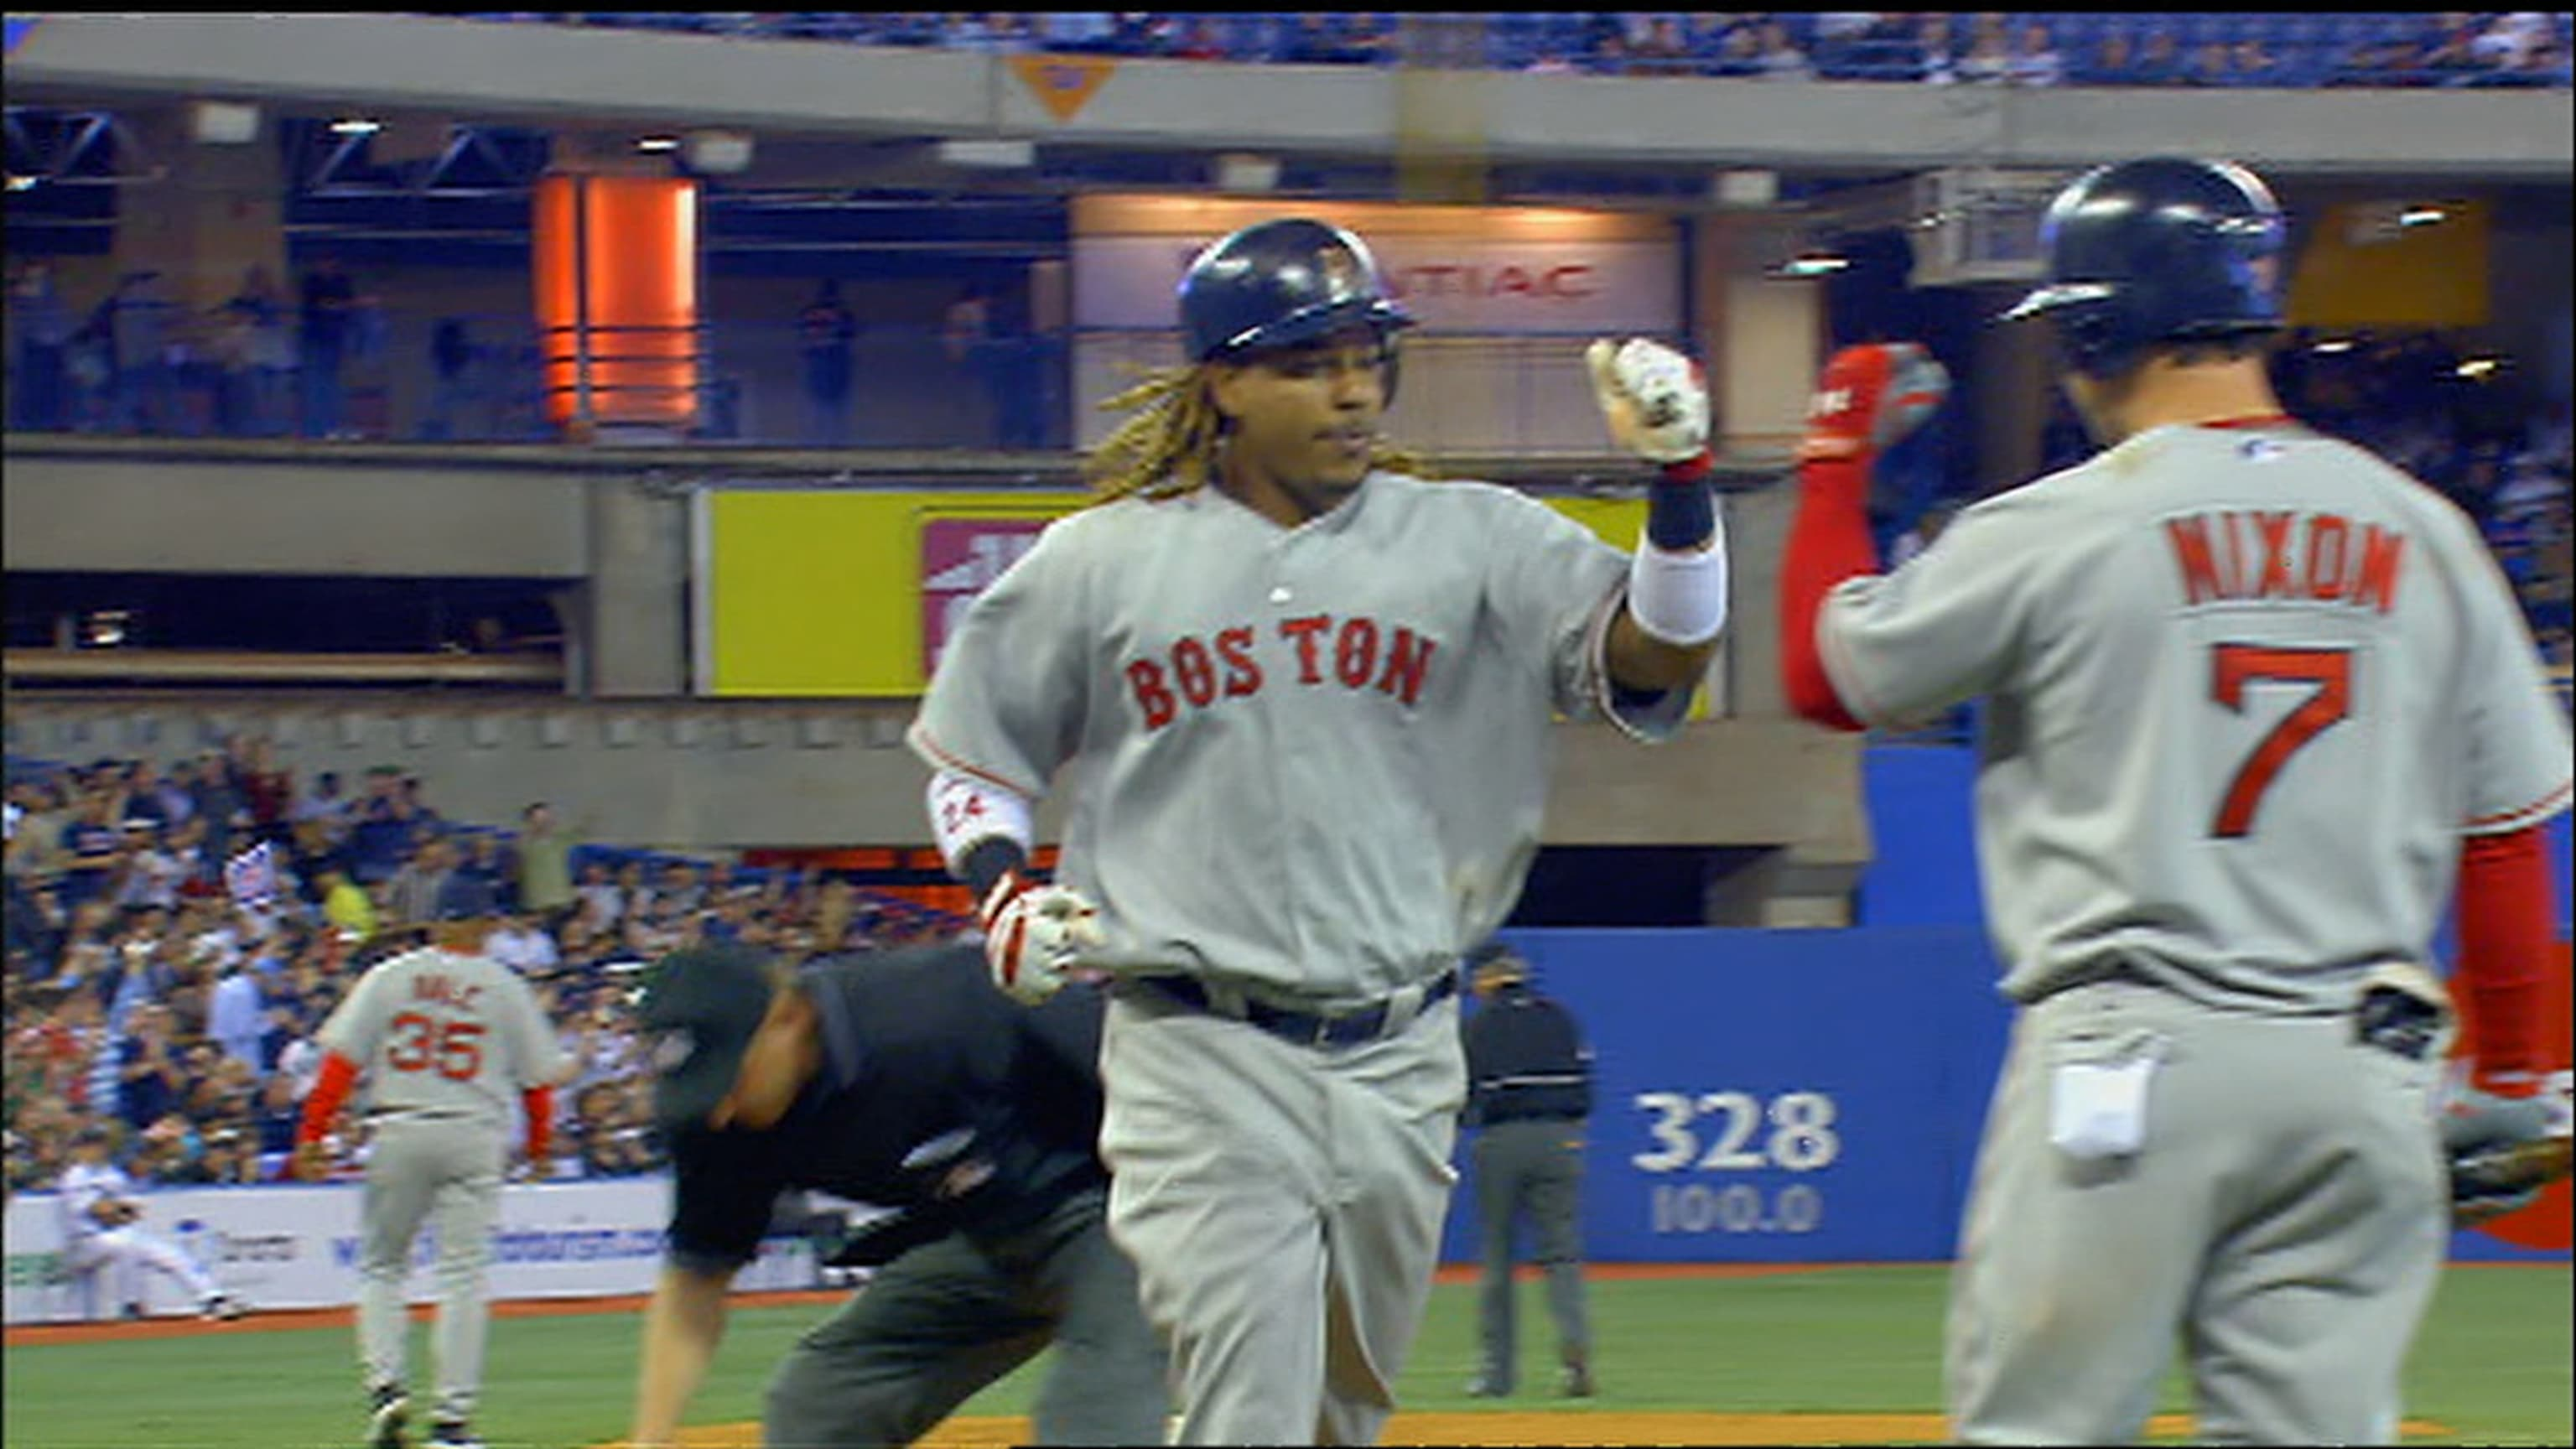 Manny Ramirez's 200th HR with Sox